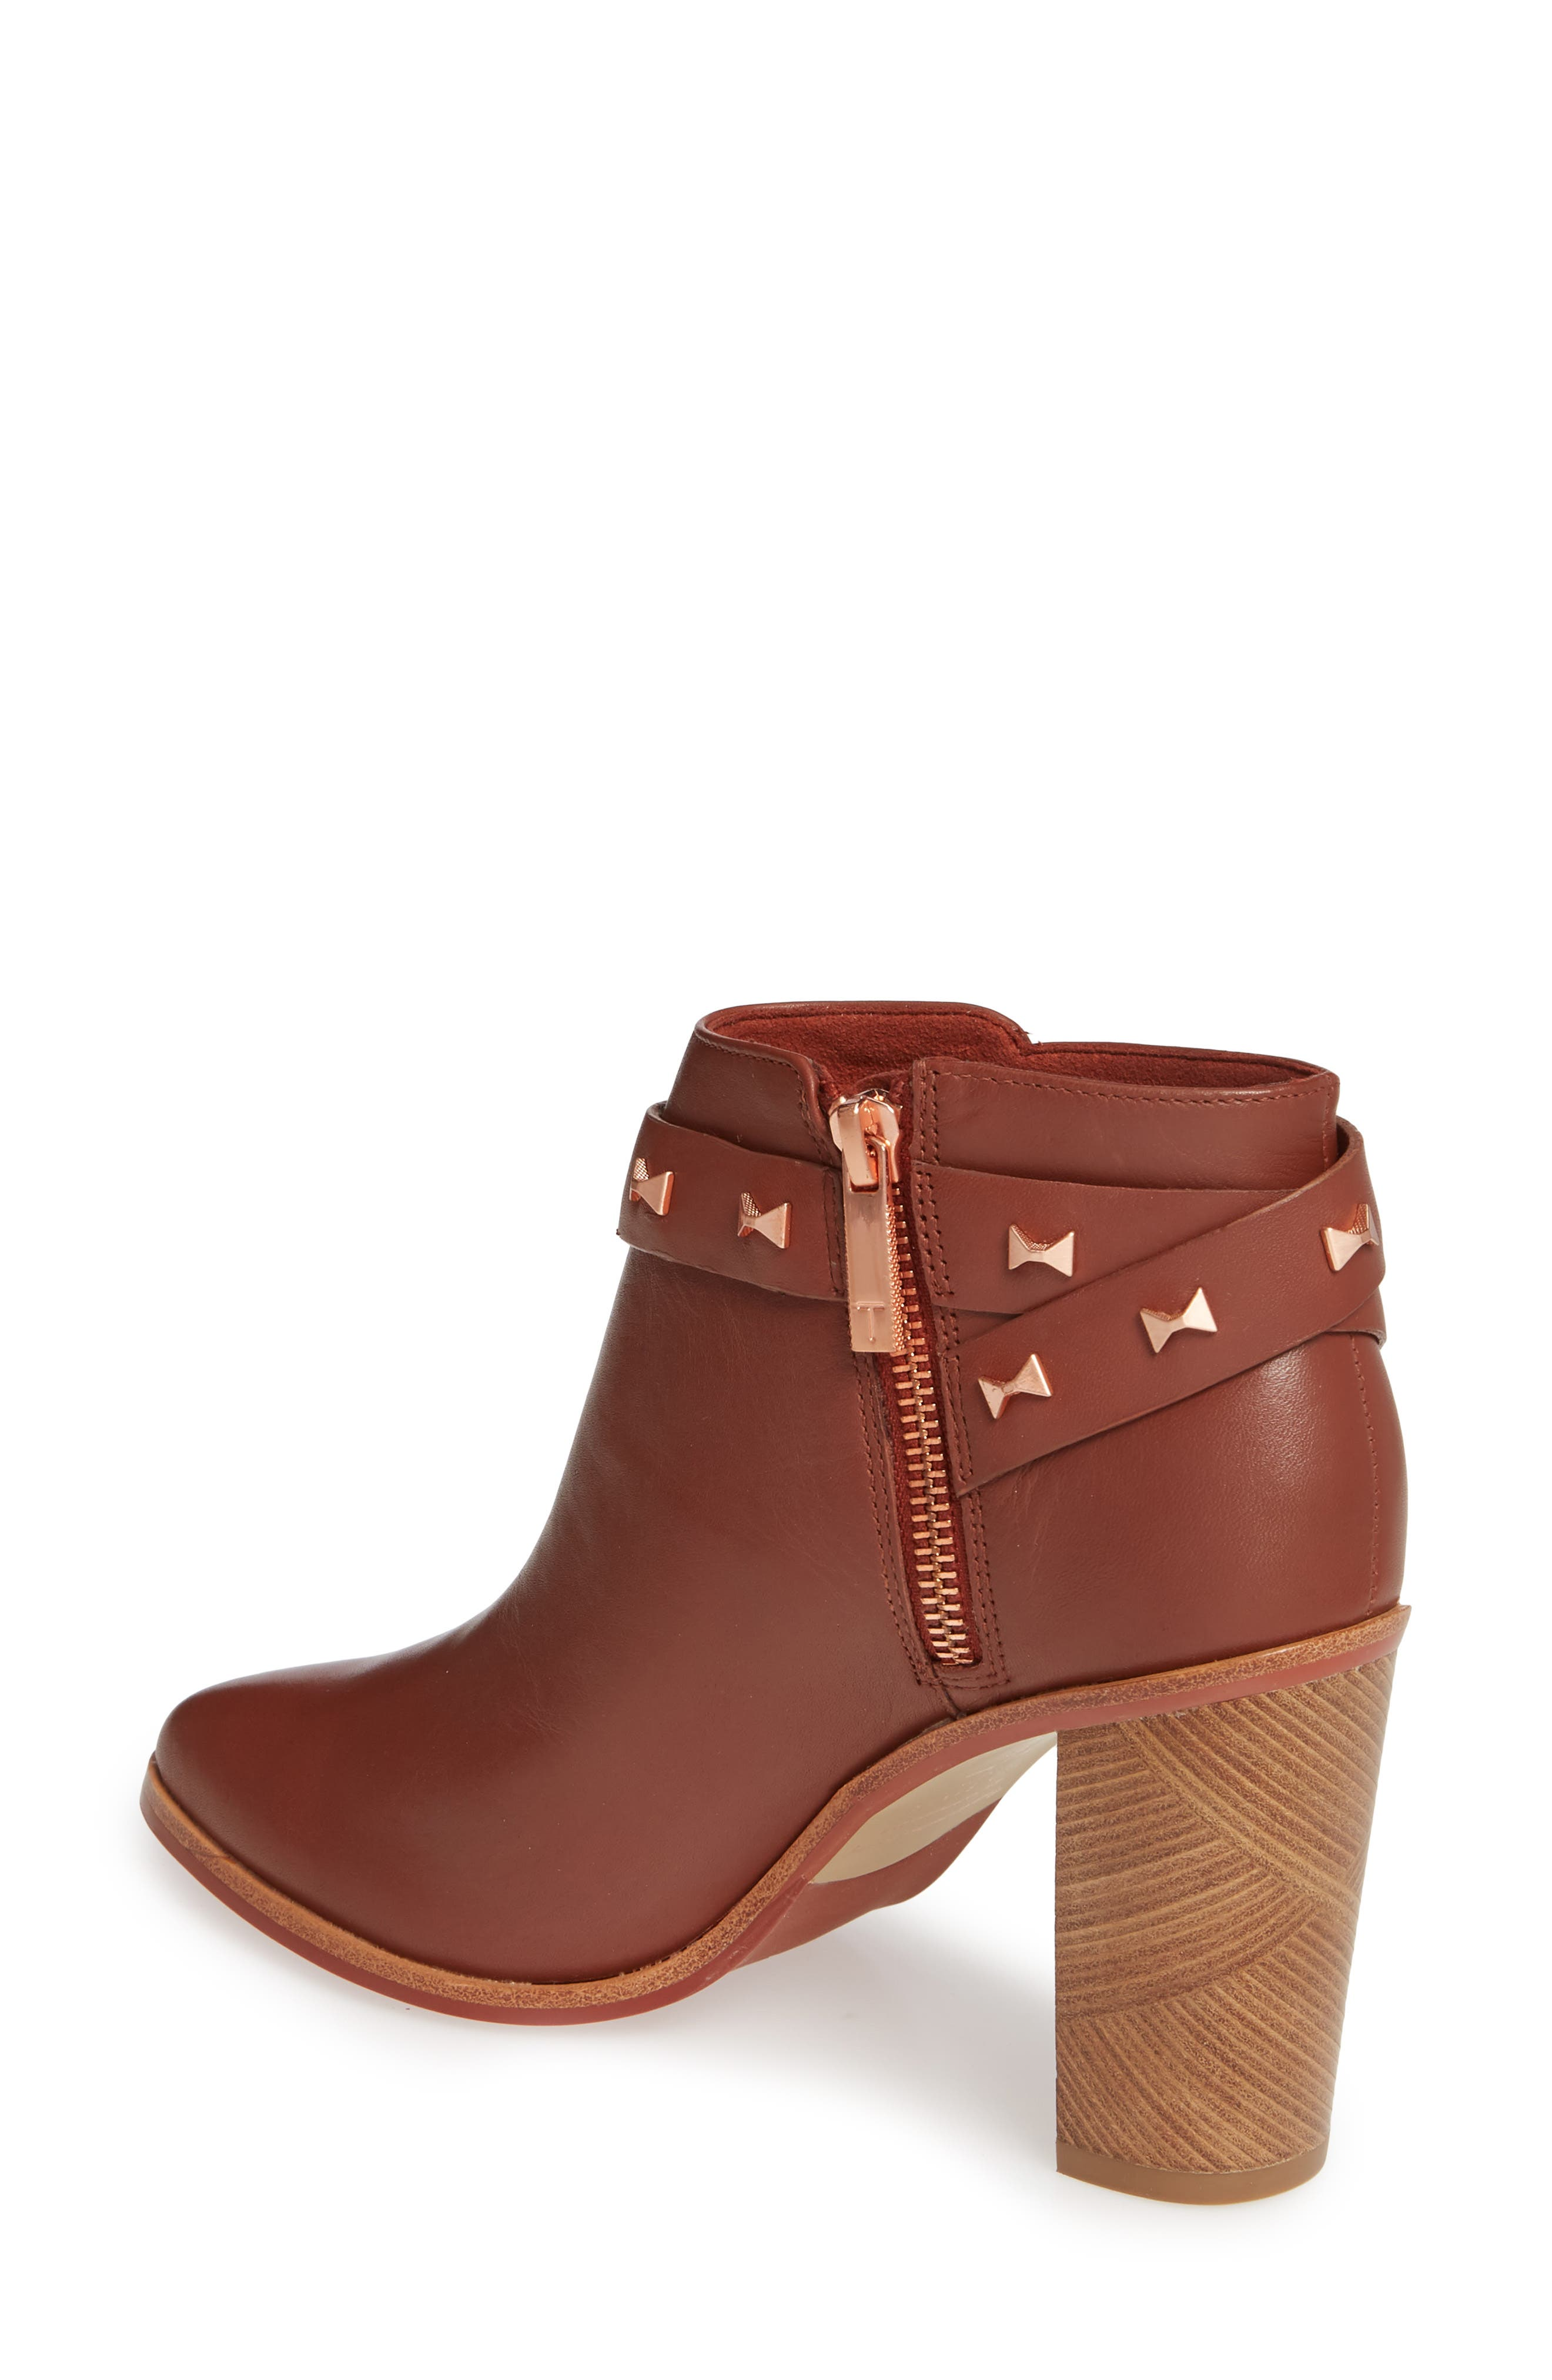 98ec460cabe Ted Baker Women s Booties Shoes